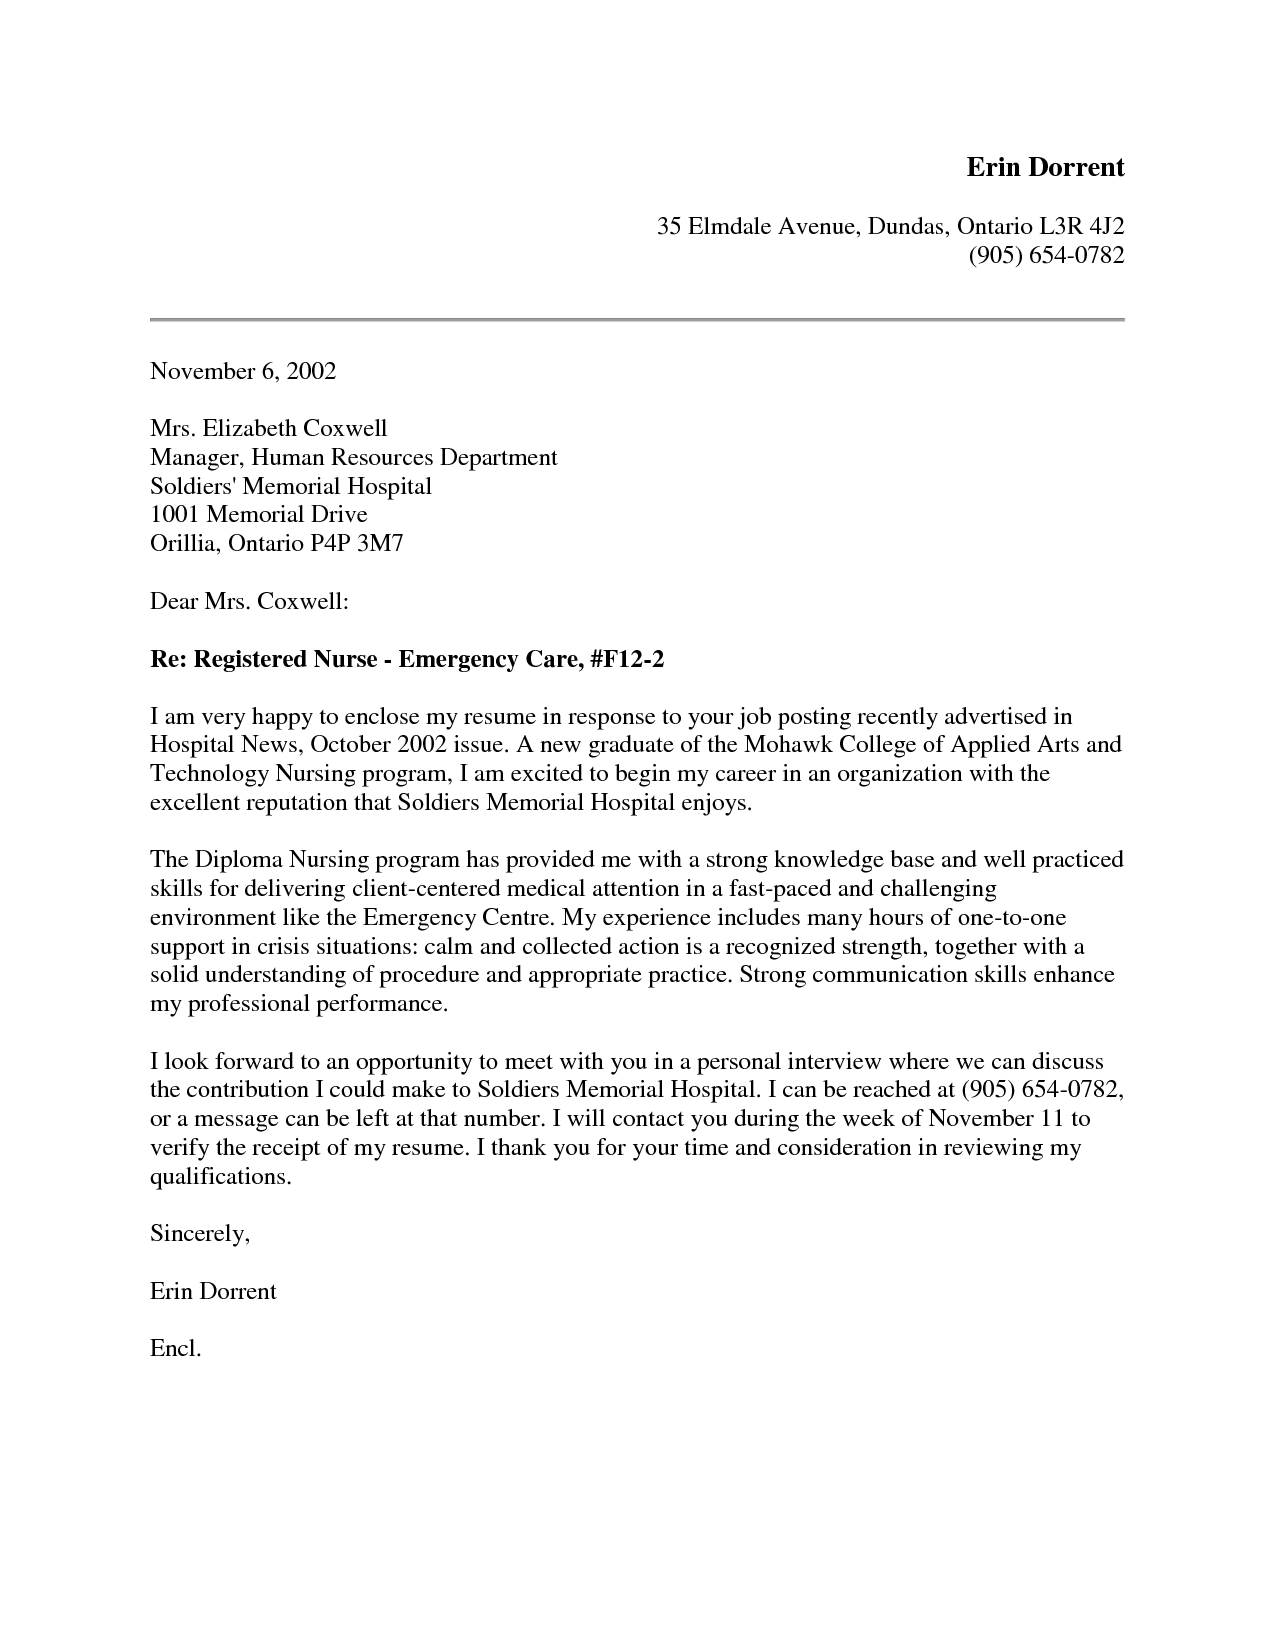 new grad nursing cover letter - Google Search | Nursing ...